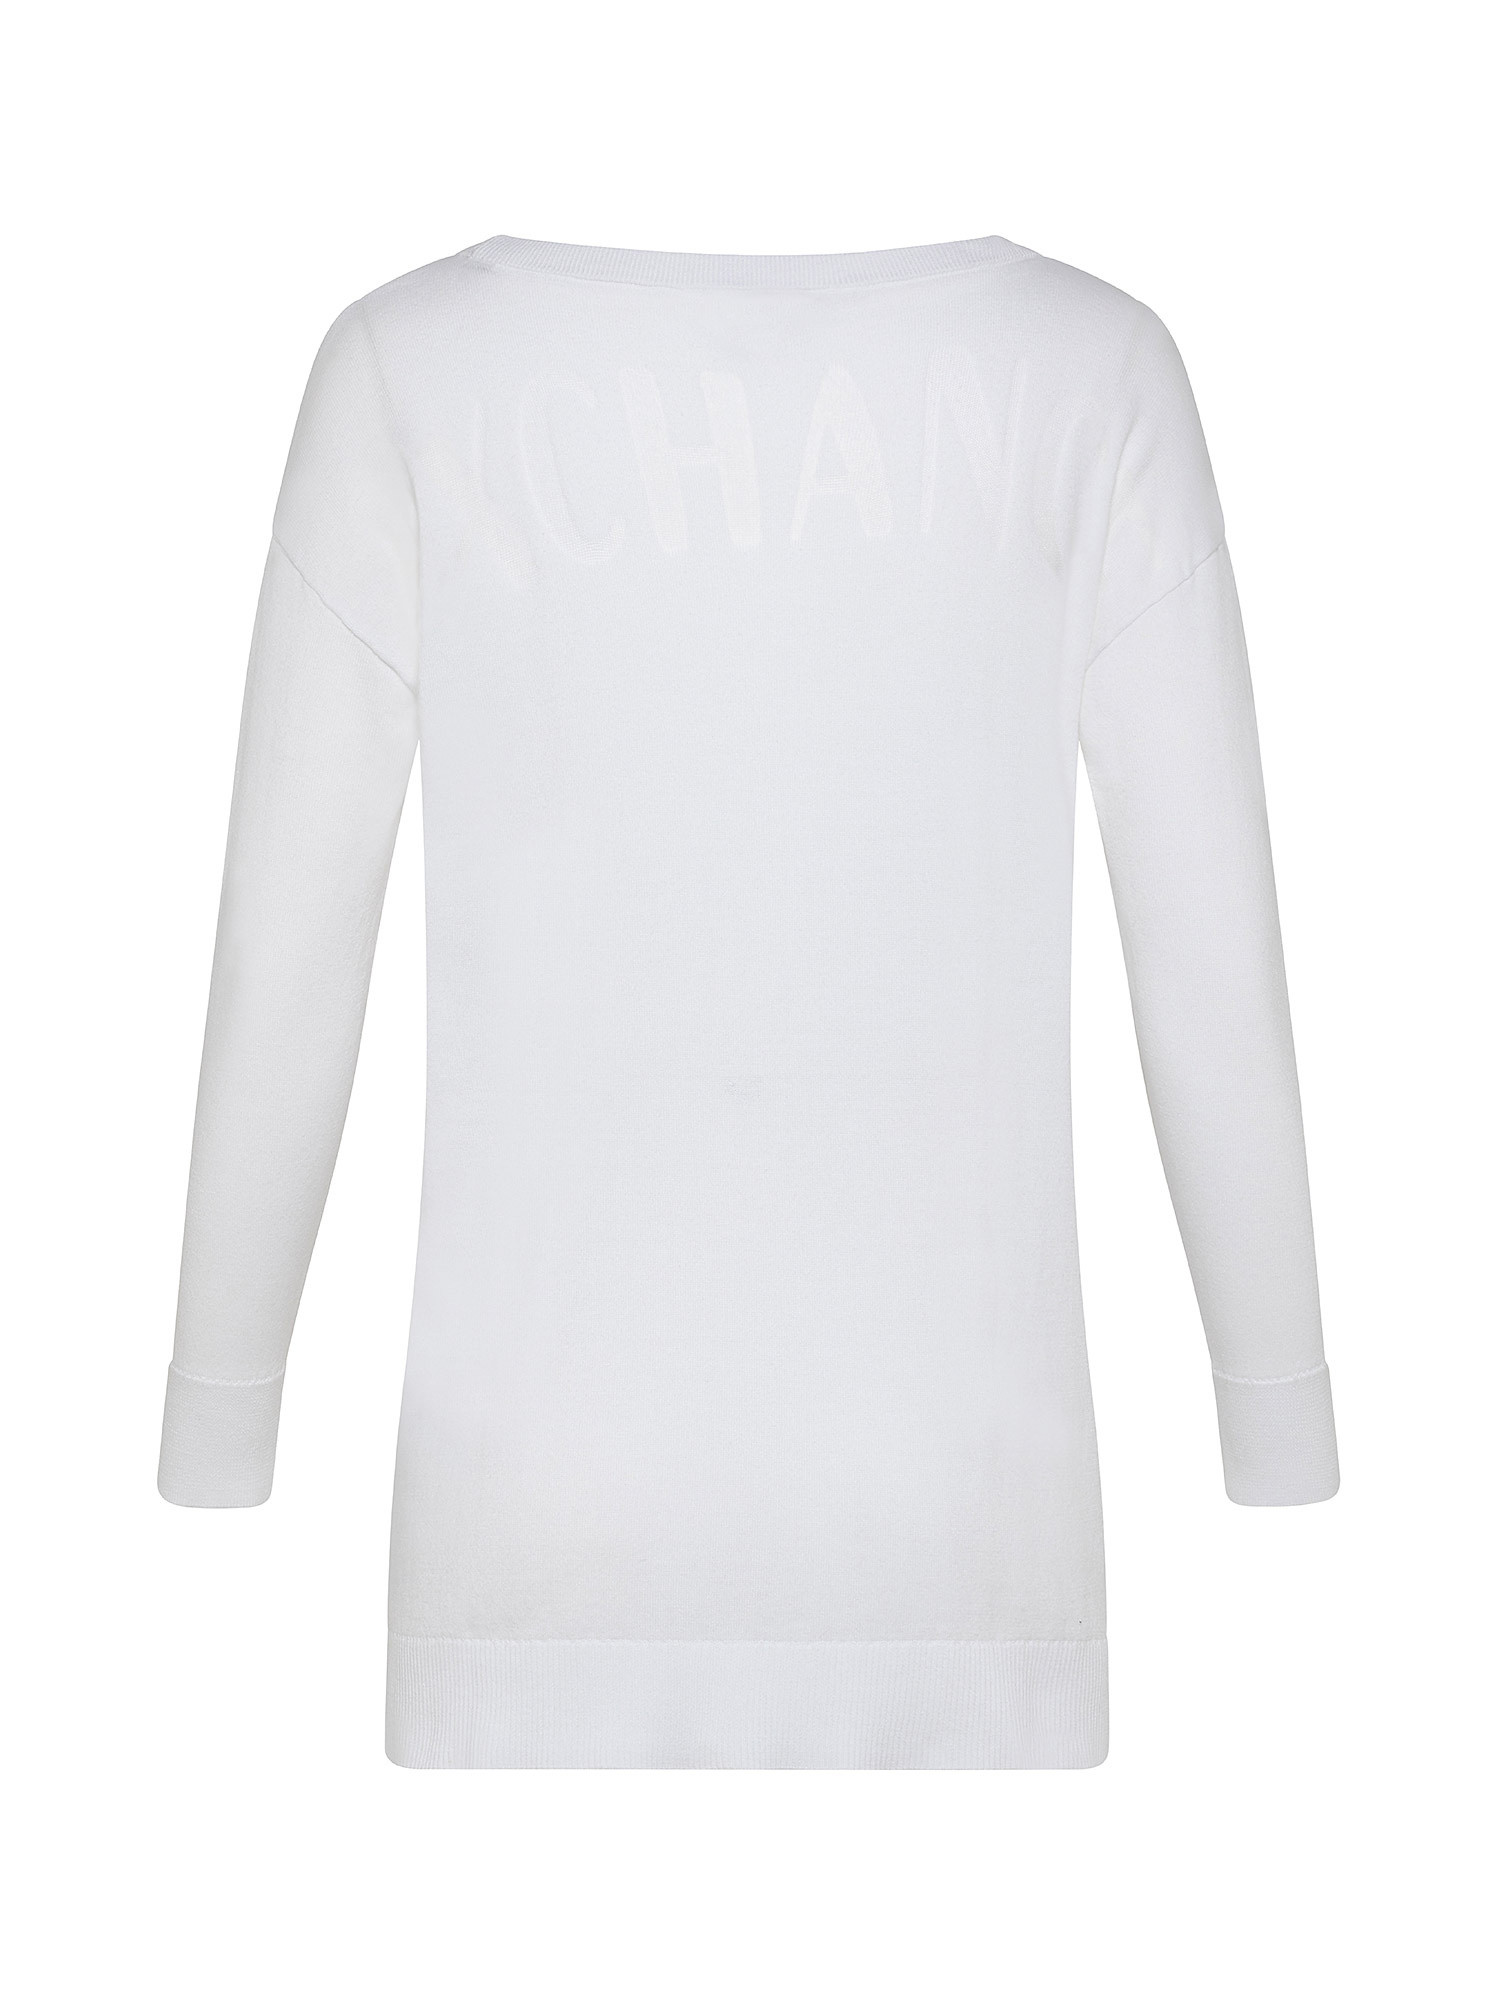 Maglione con logo, Bianco, large image number 1